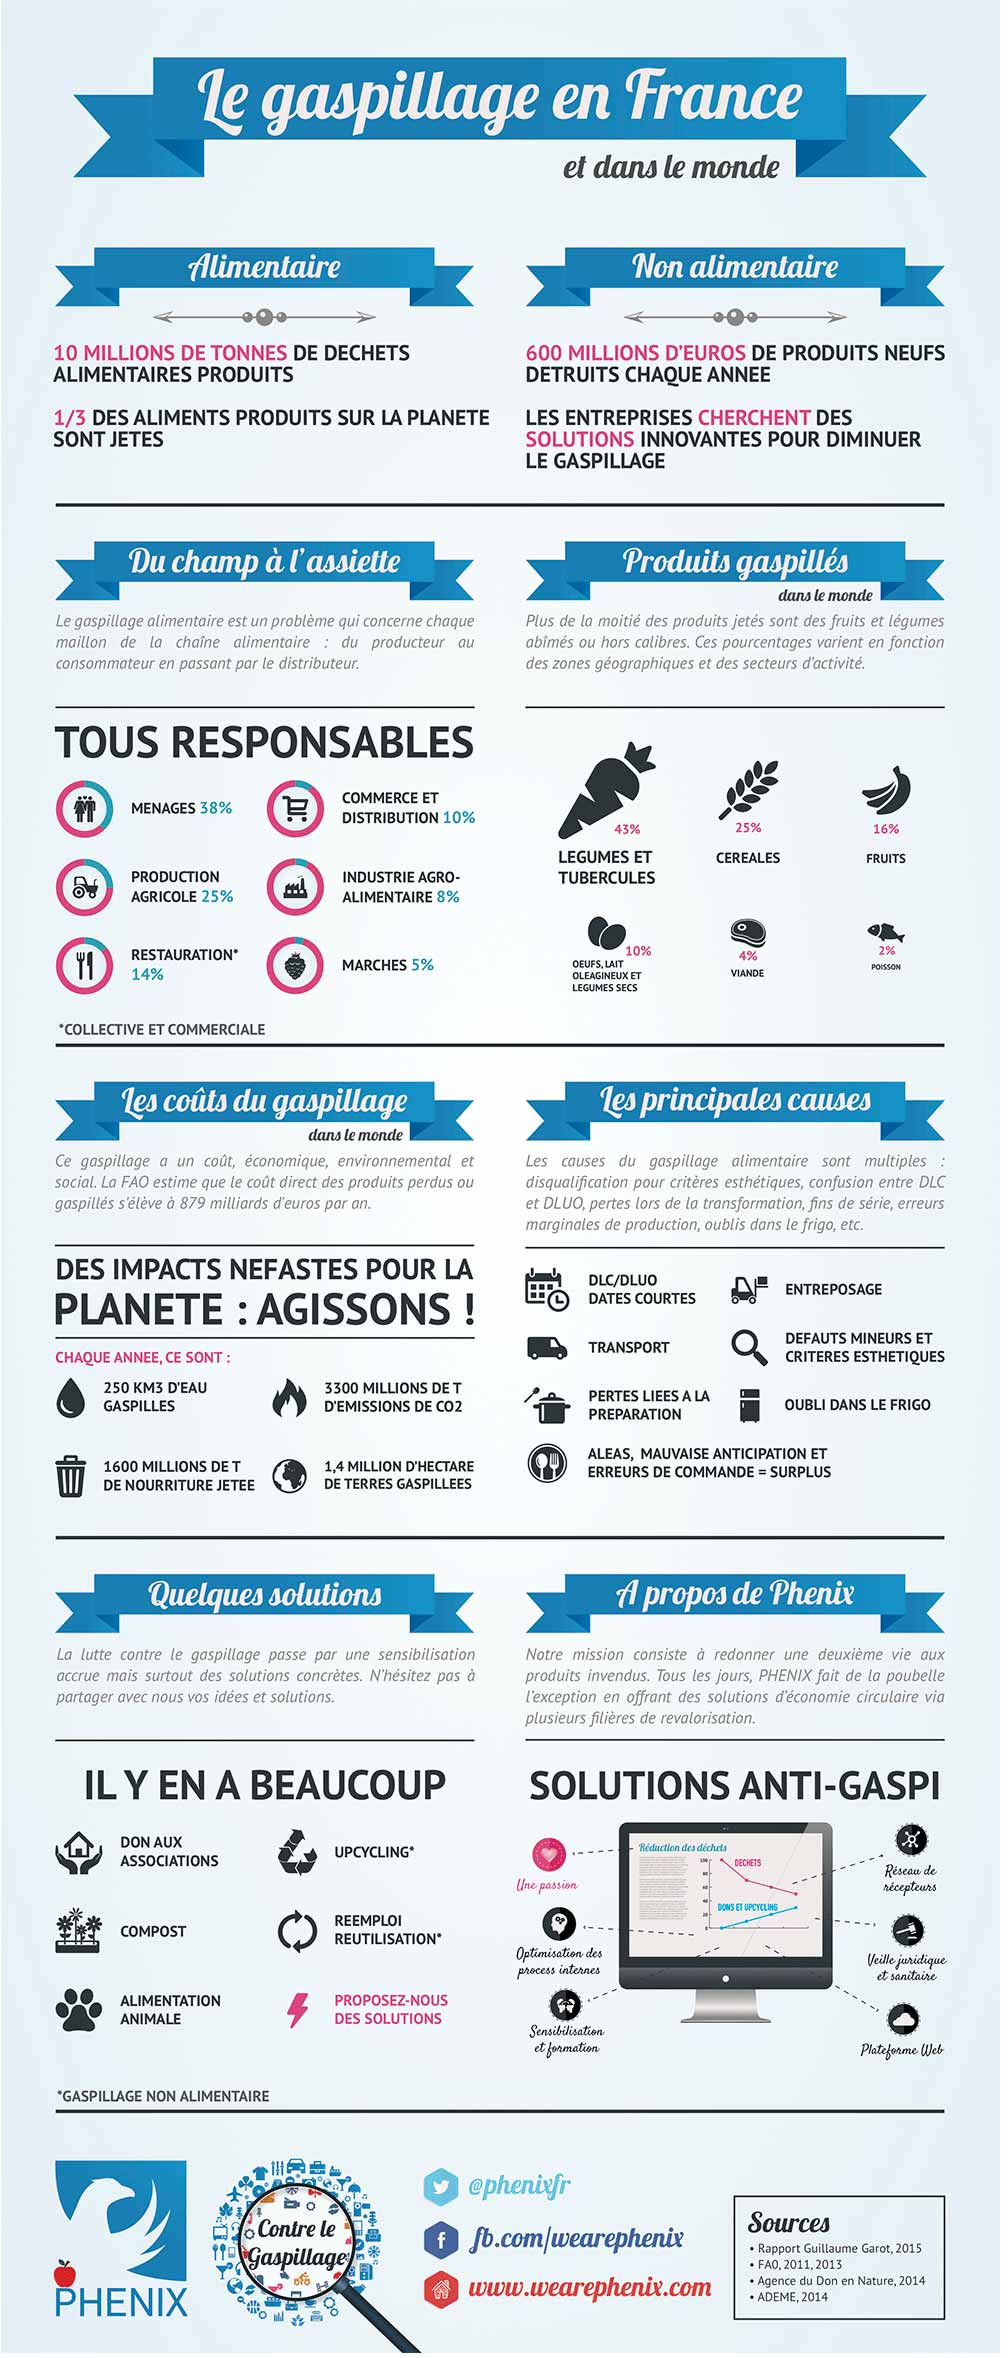 infographie anti-gaspillage alimentaire phenix